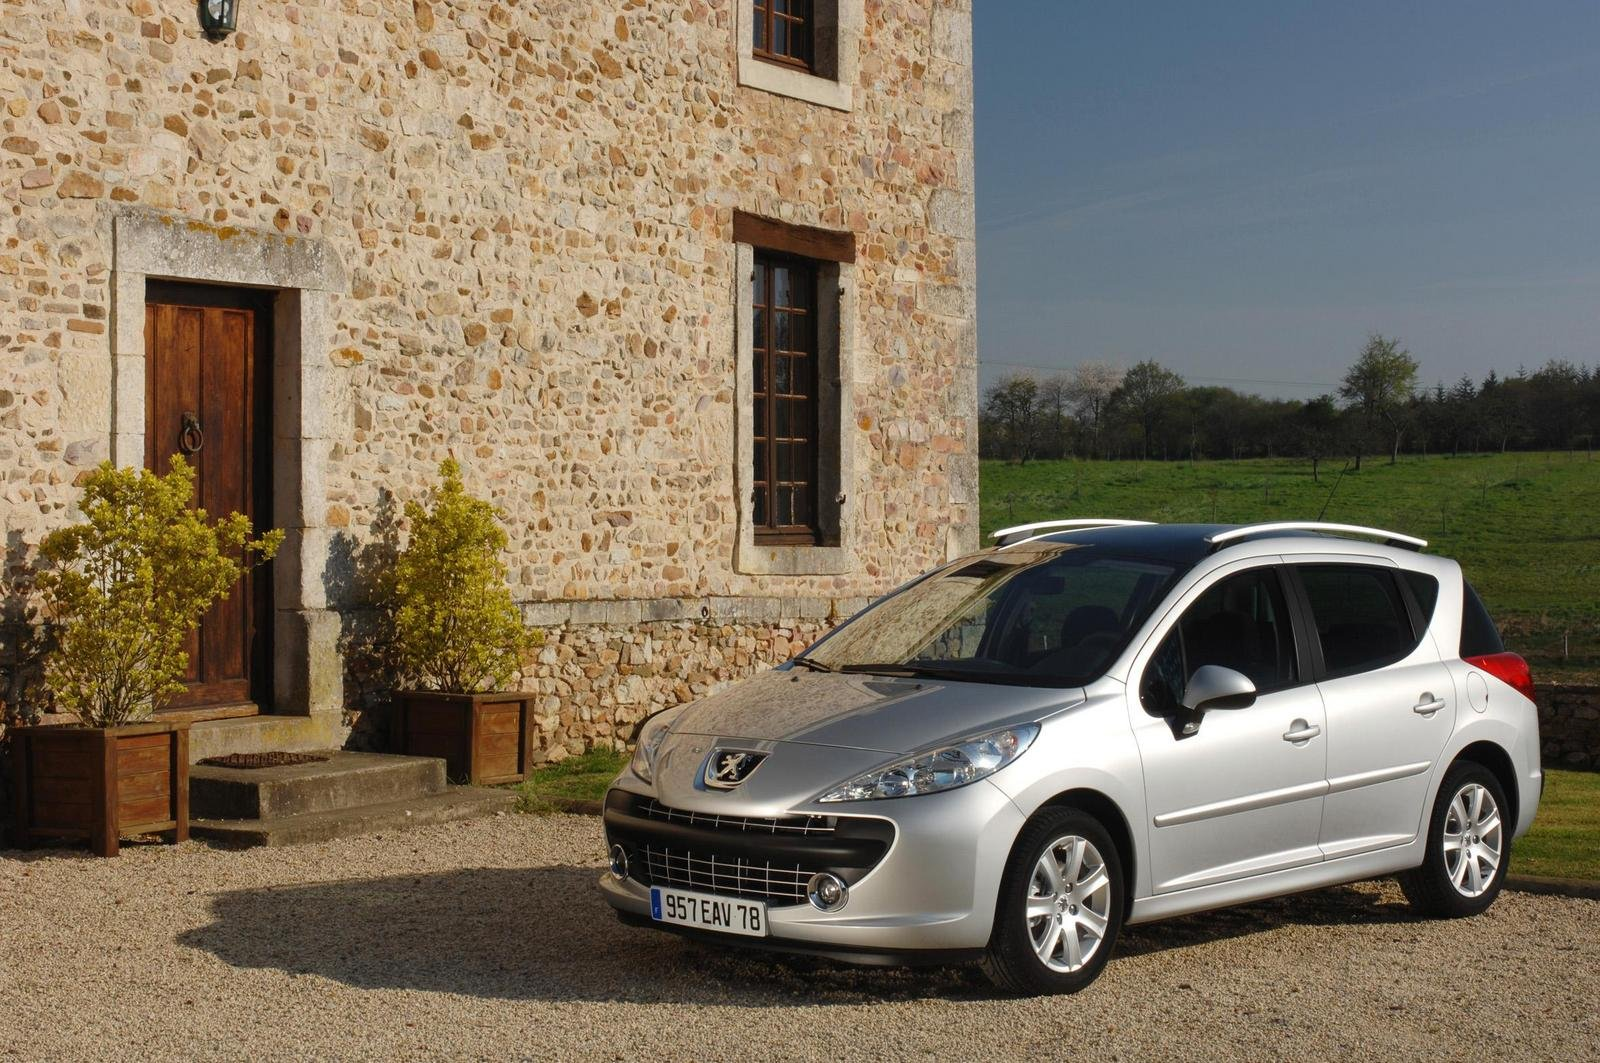 2008 peugeot 207 sw picture 175283 car review top speed. Black Bedroom Furniture Sets. Home Design Ideas